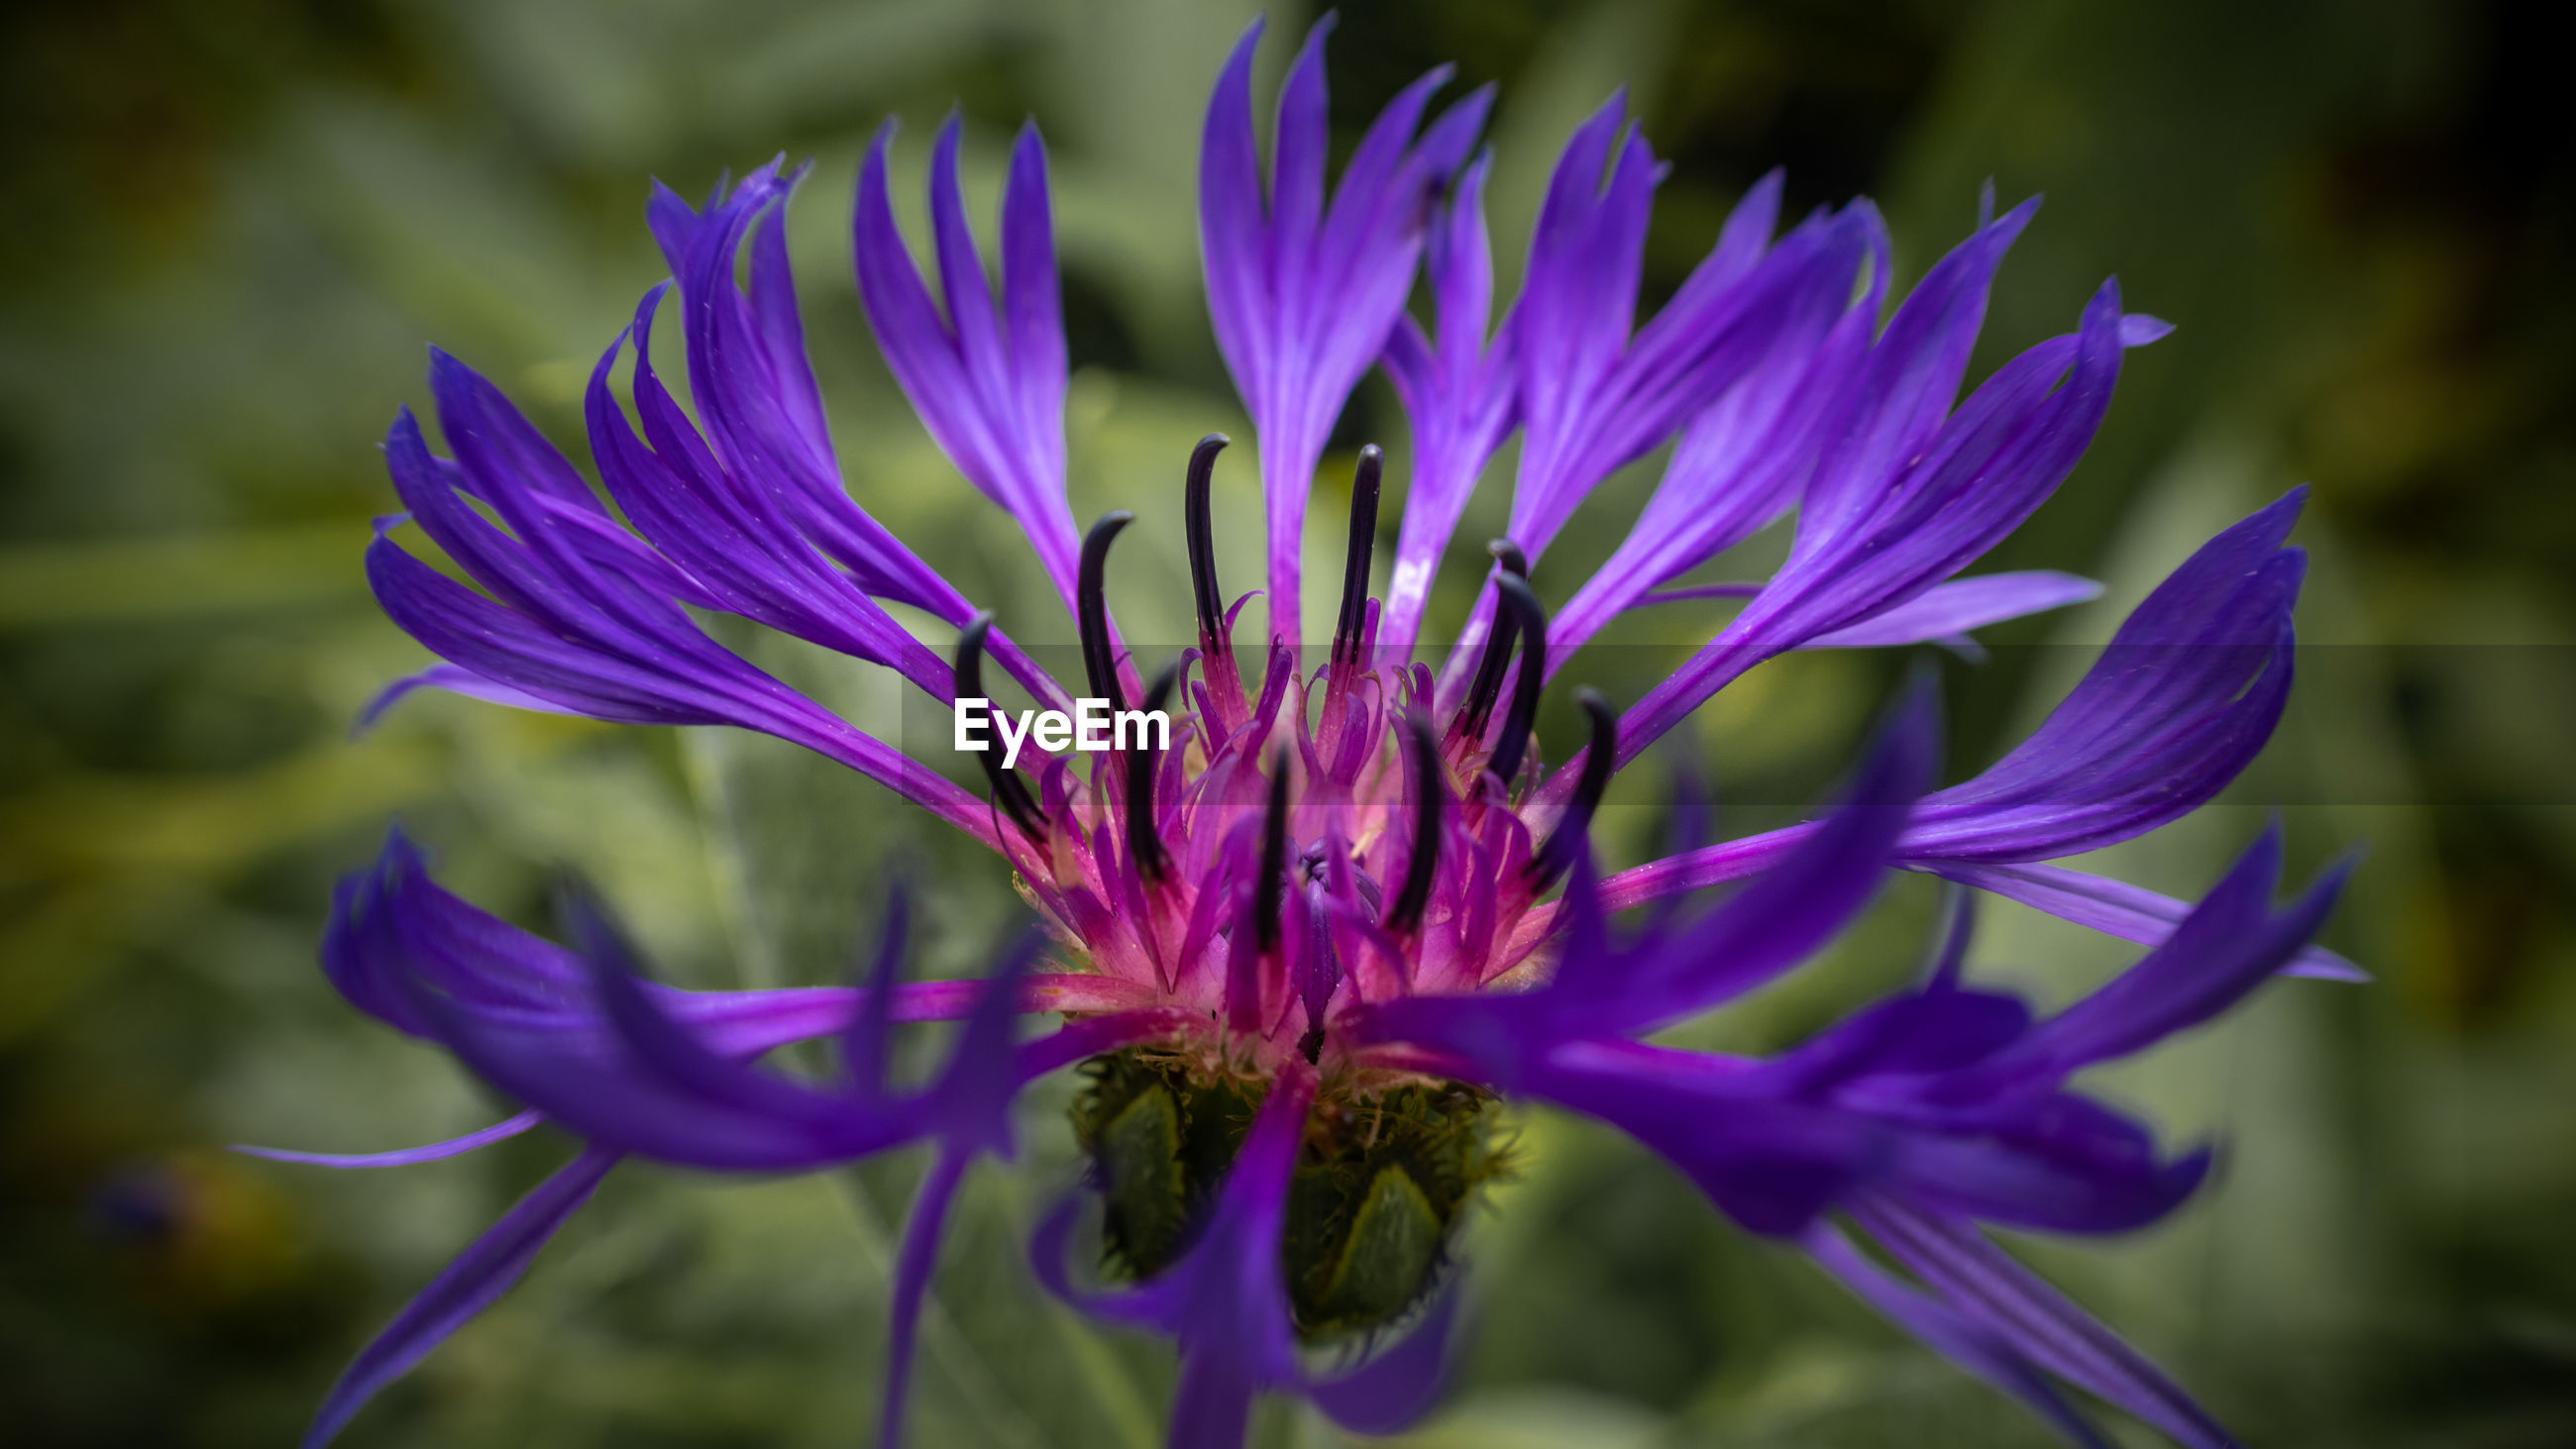 CLOSE-UP OF PURPLE CONEFLOWER